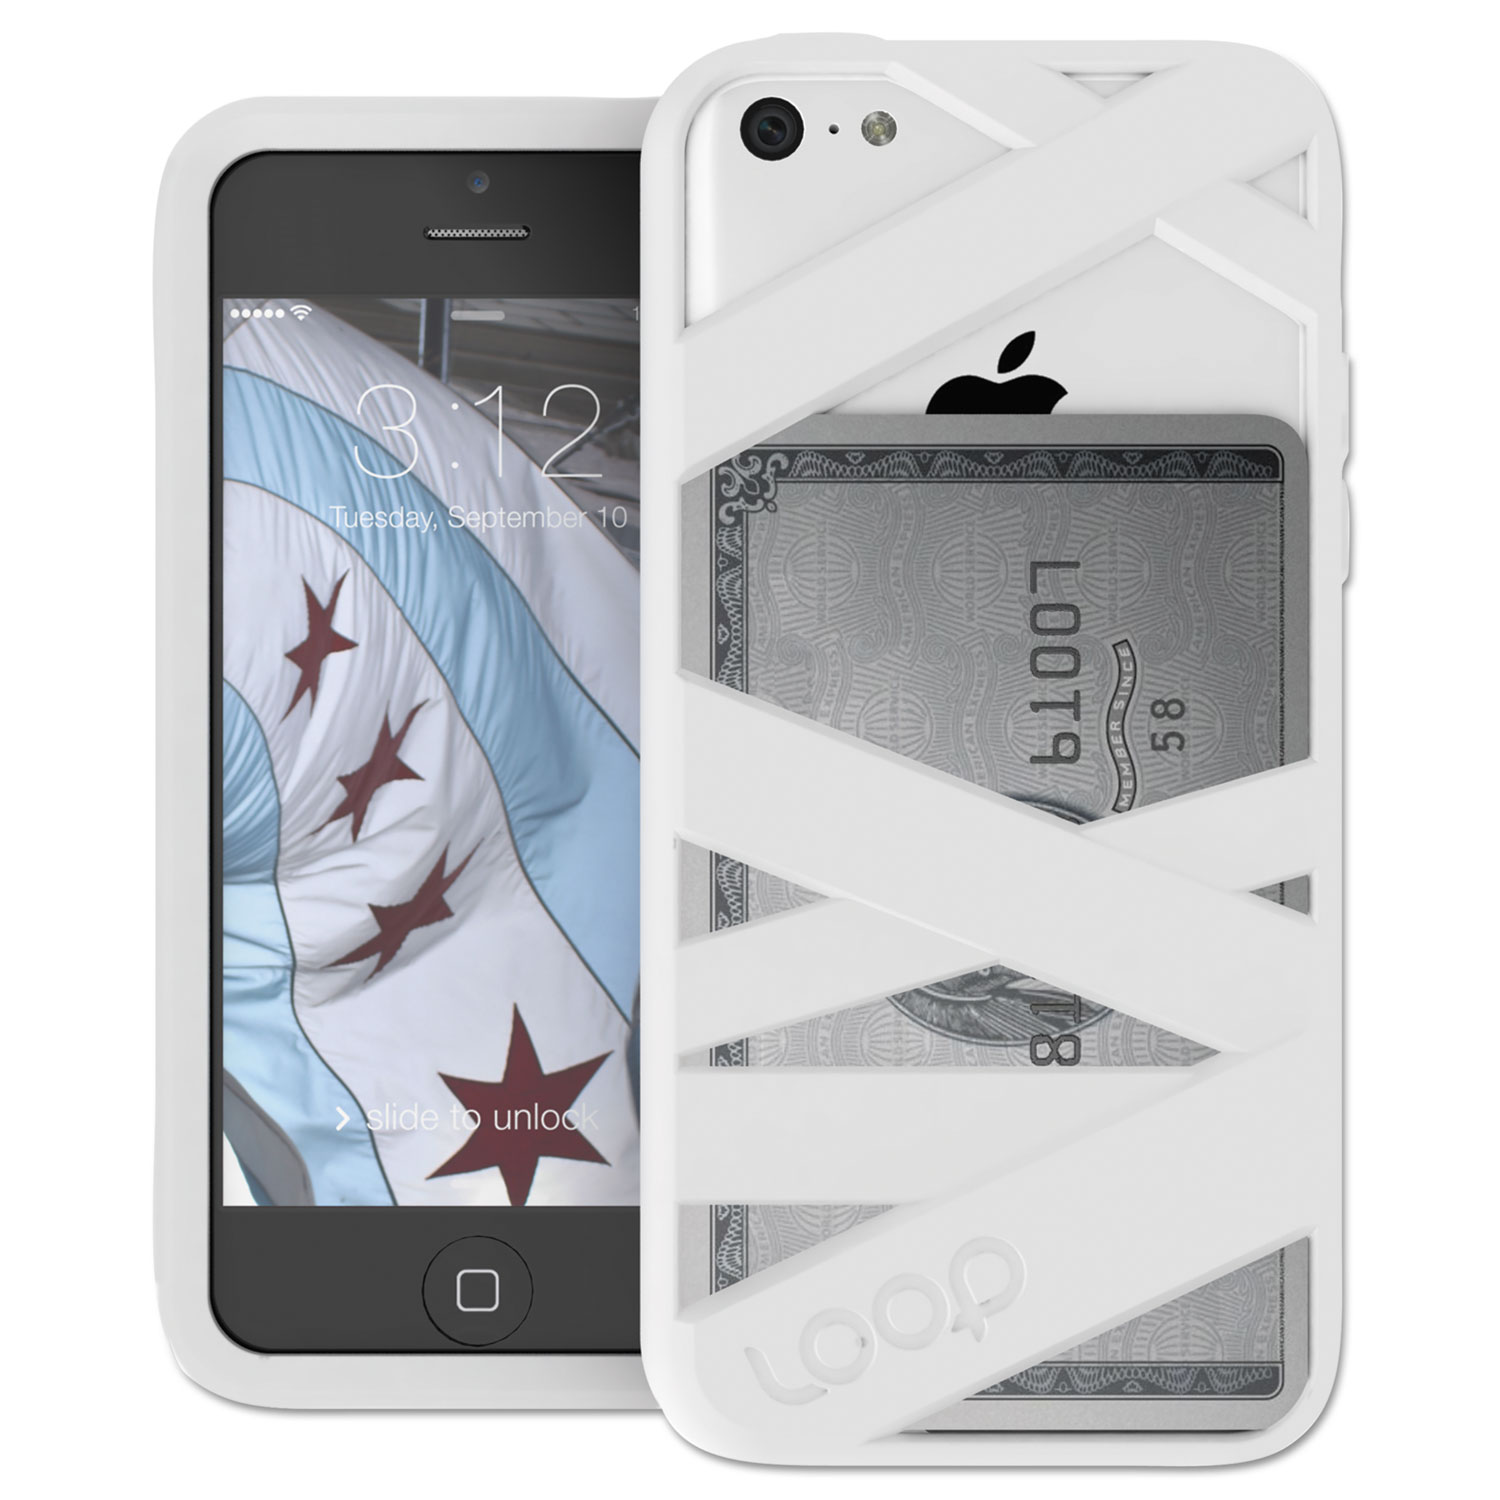 Mummy Case for iPhone 5c, White